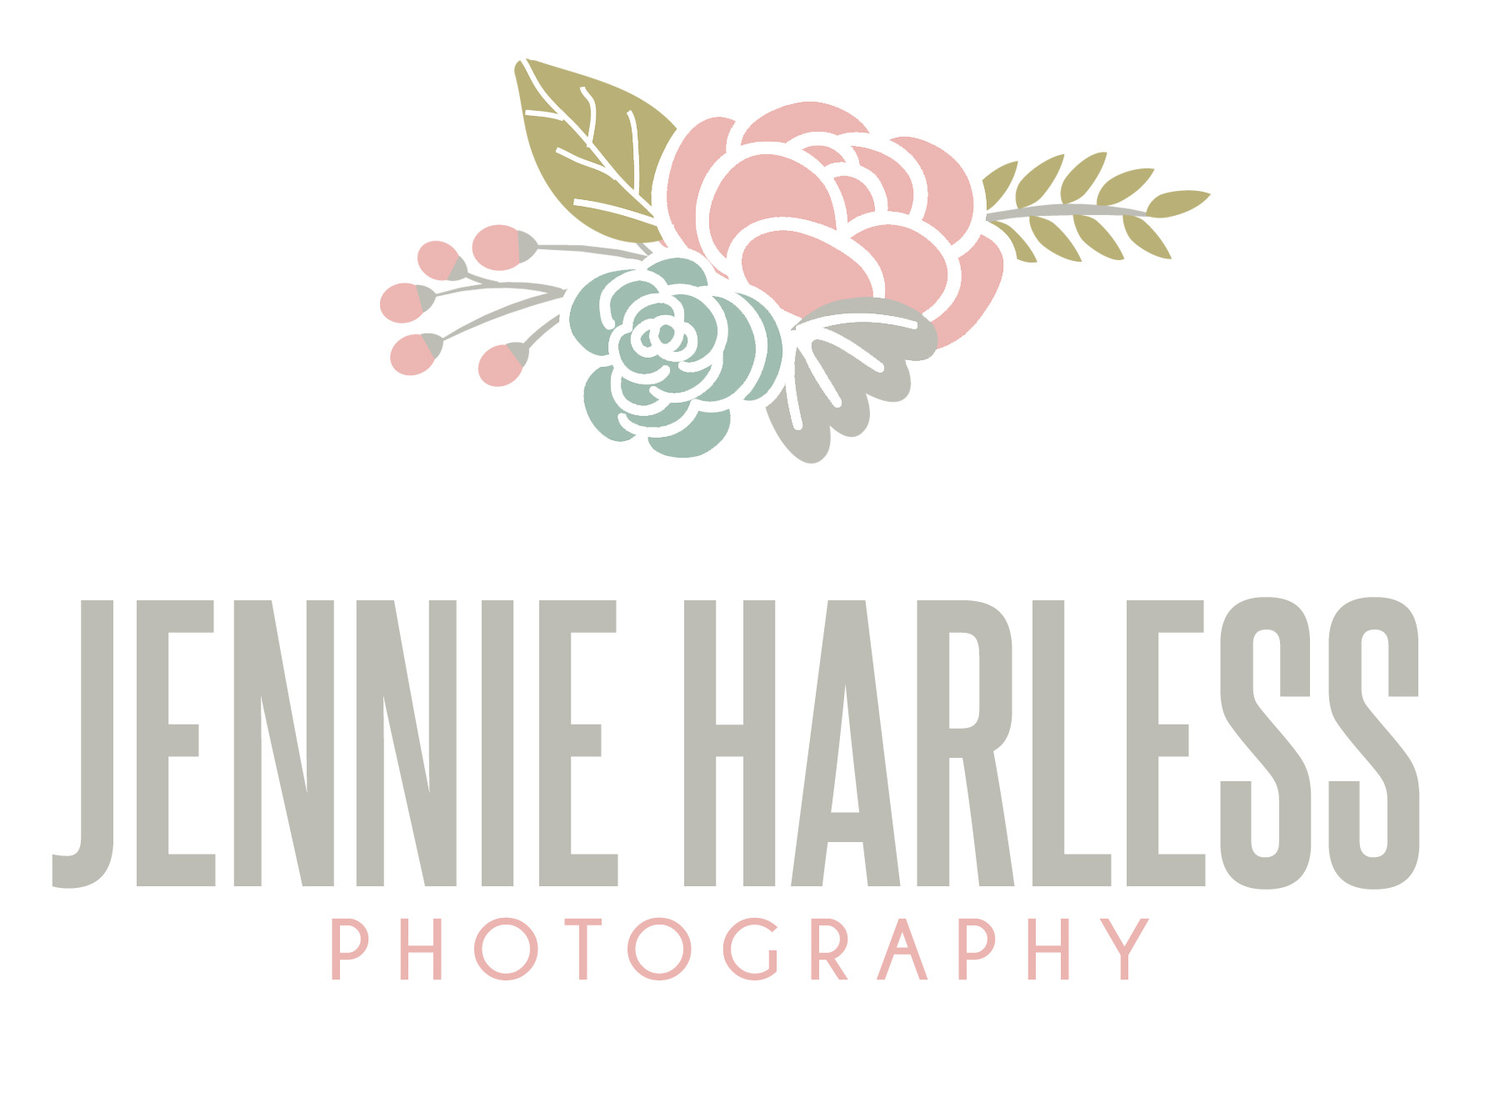 Jennie Harless Photography